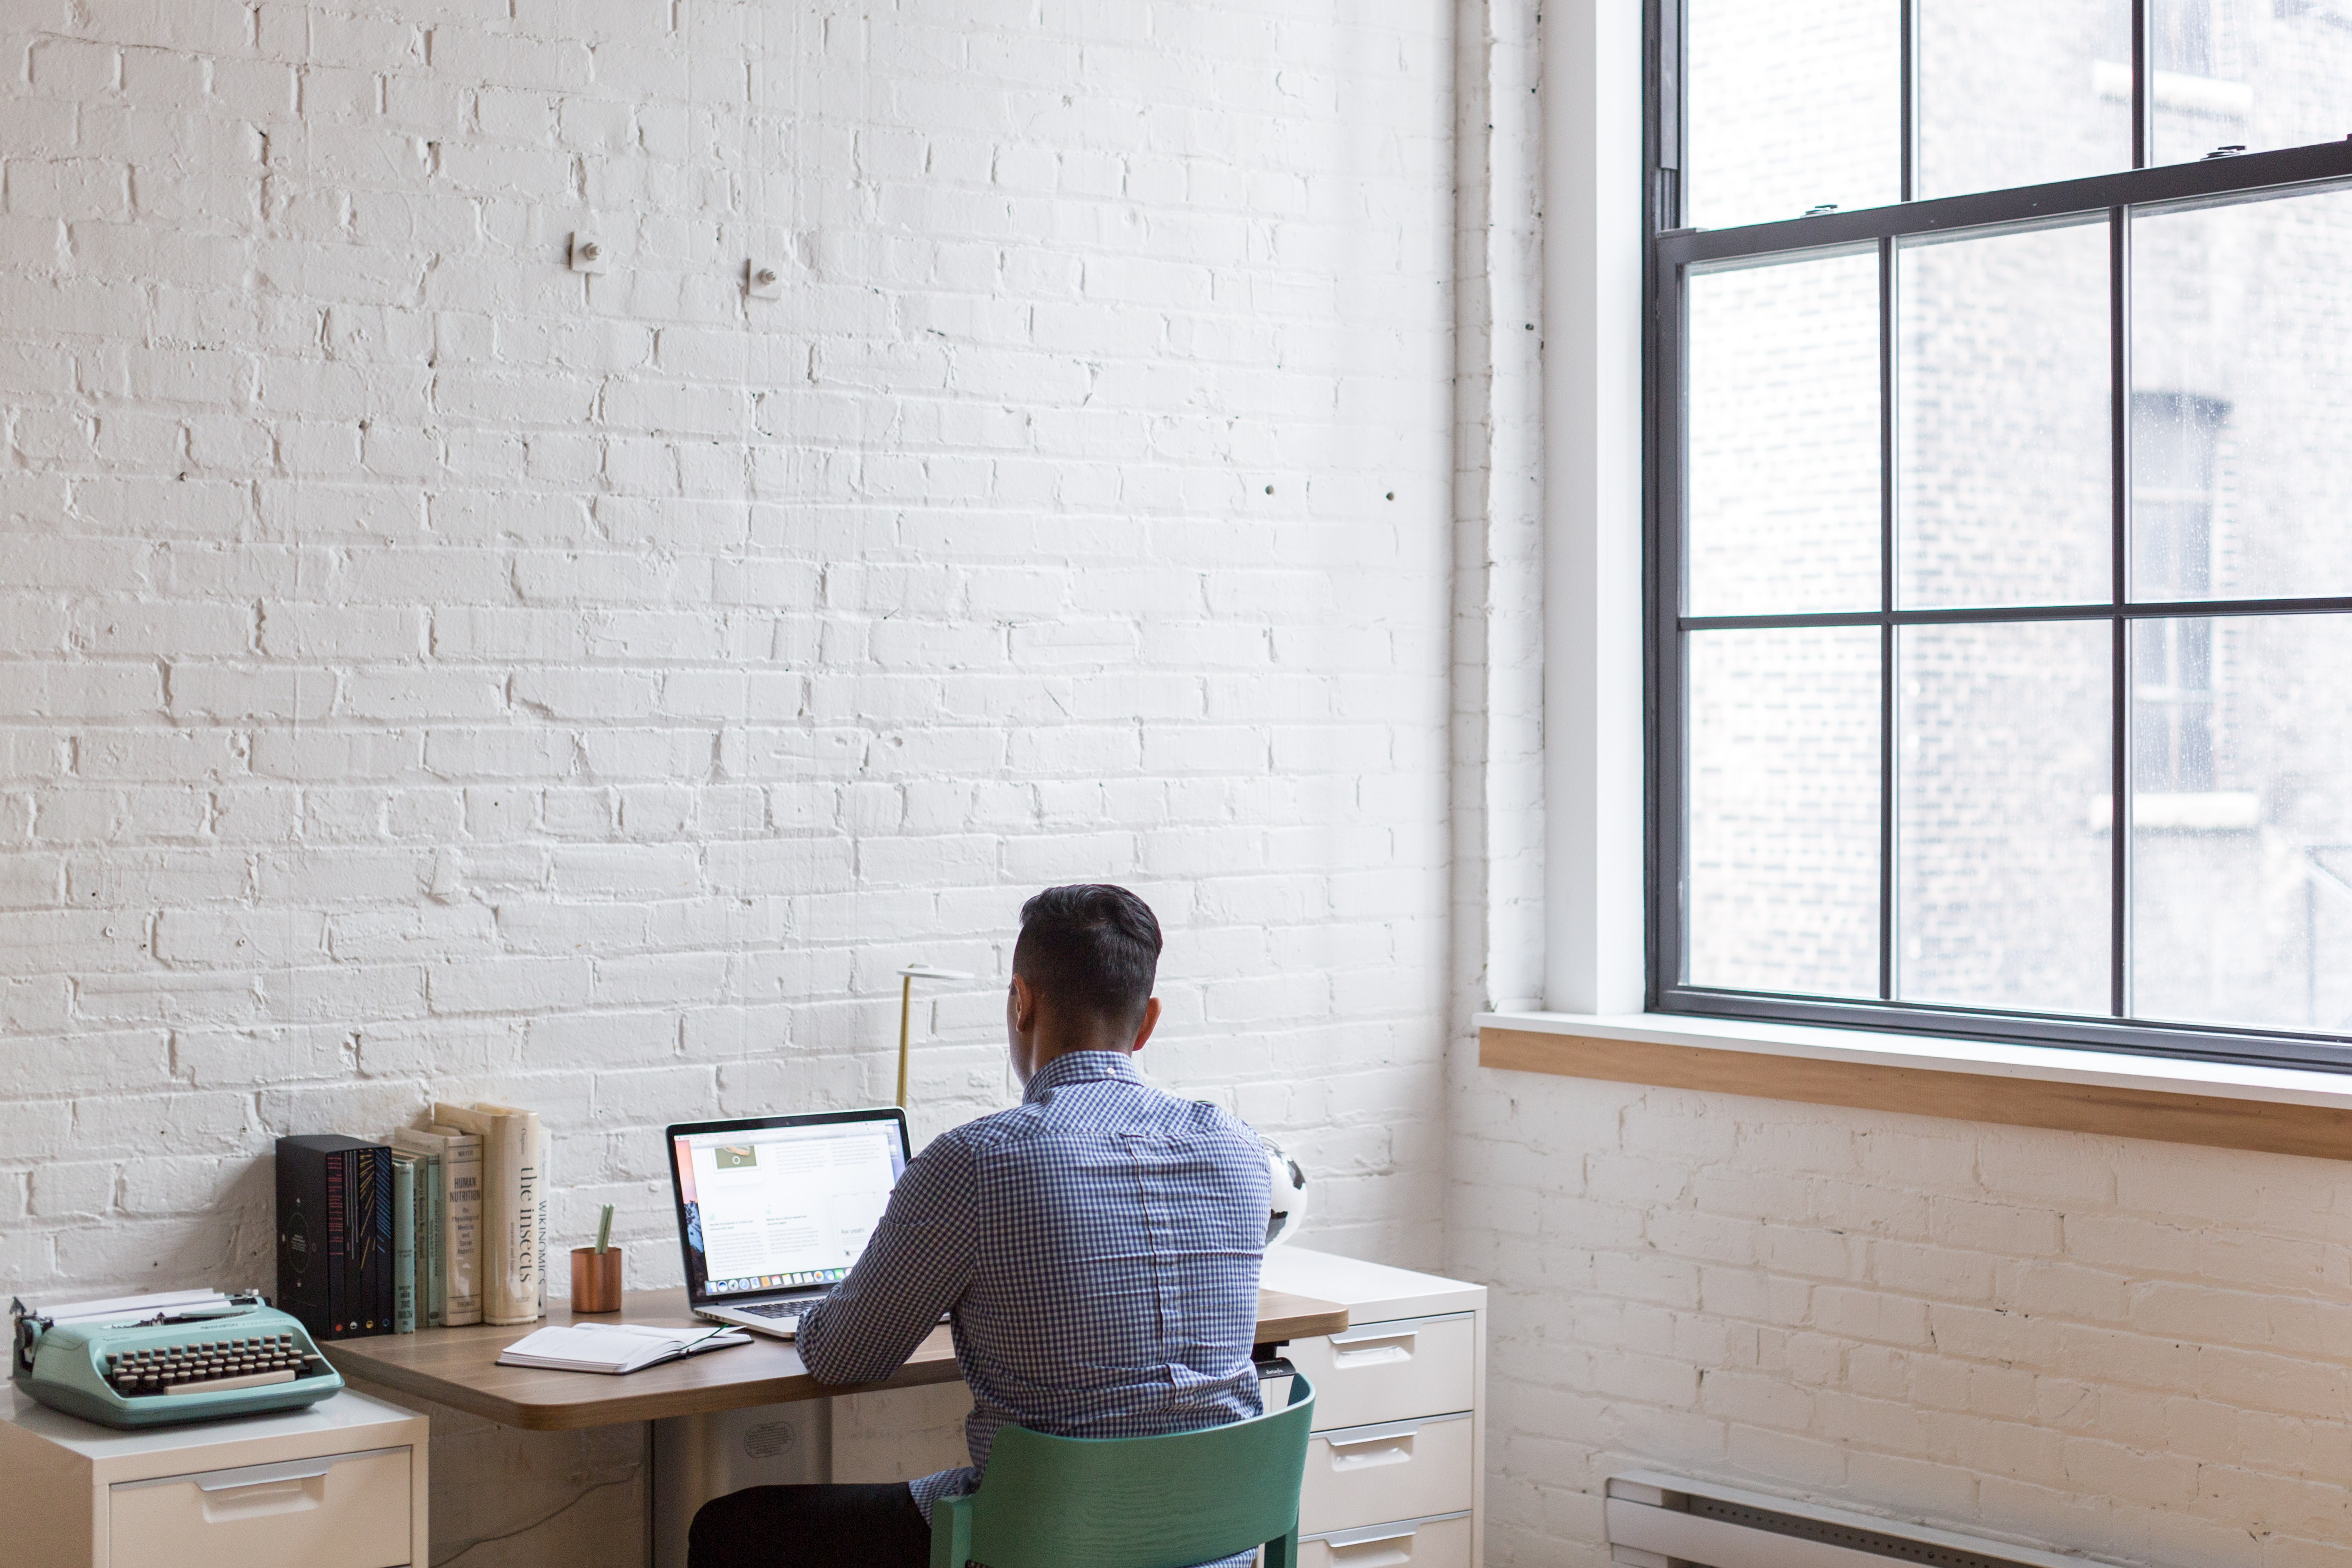 How to Shift From an Office-Based Job to Working Remotely